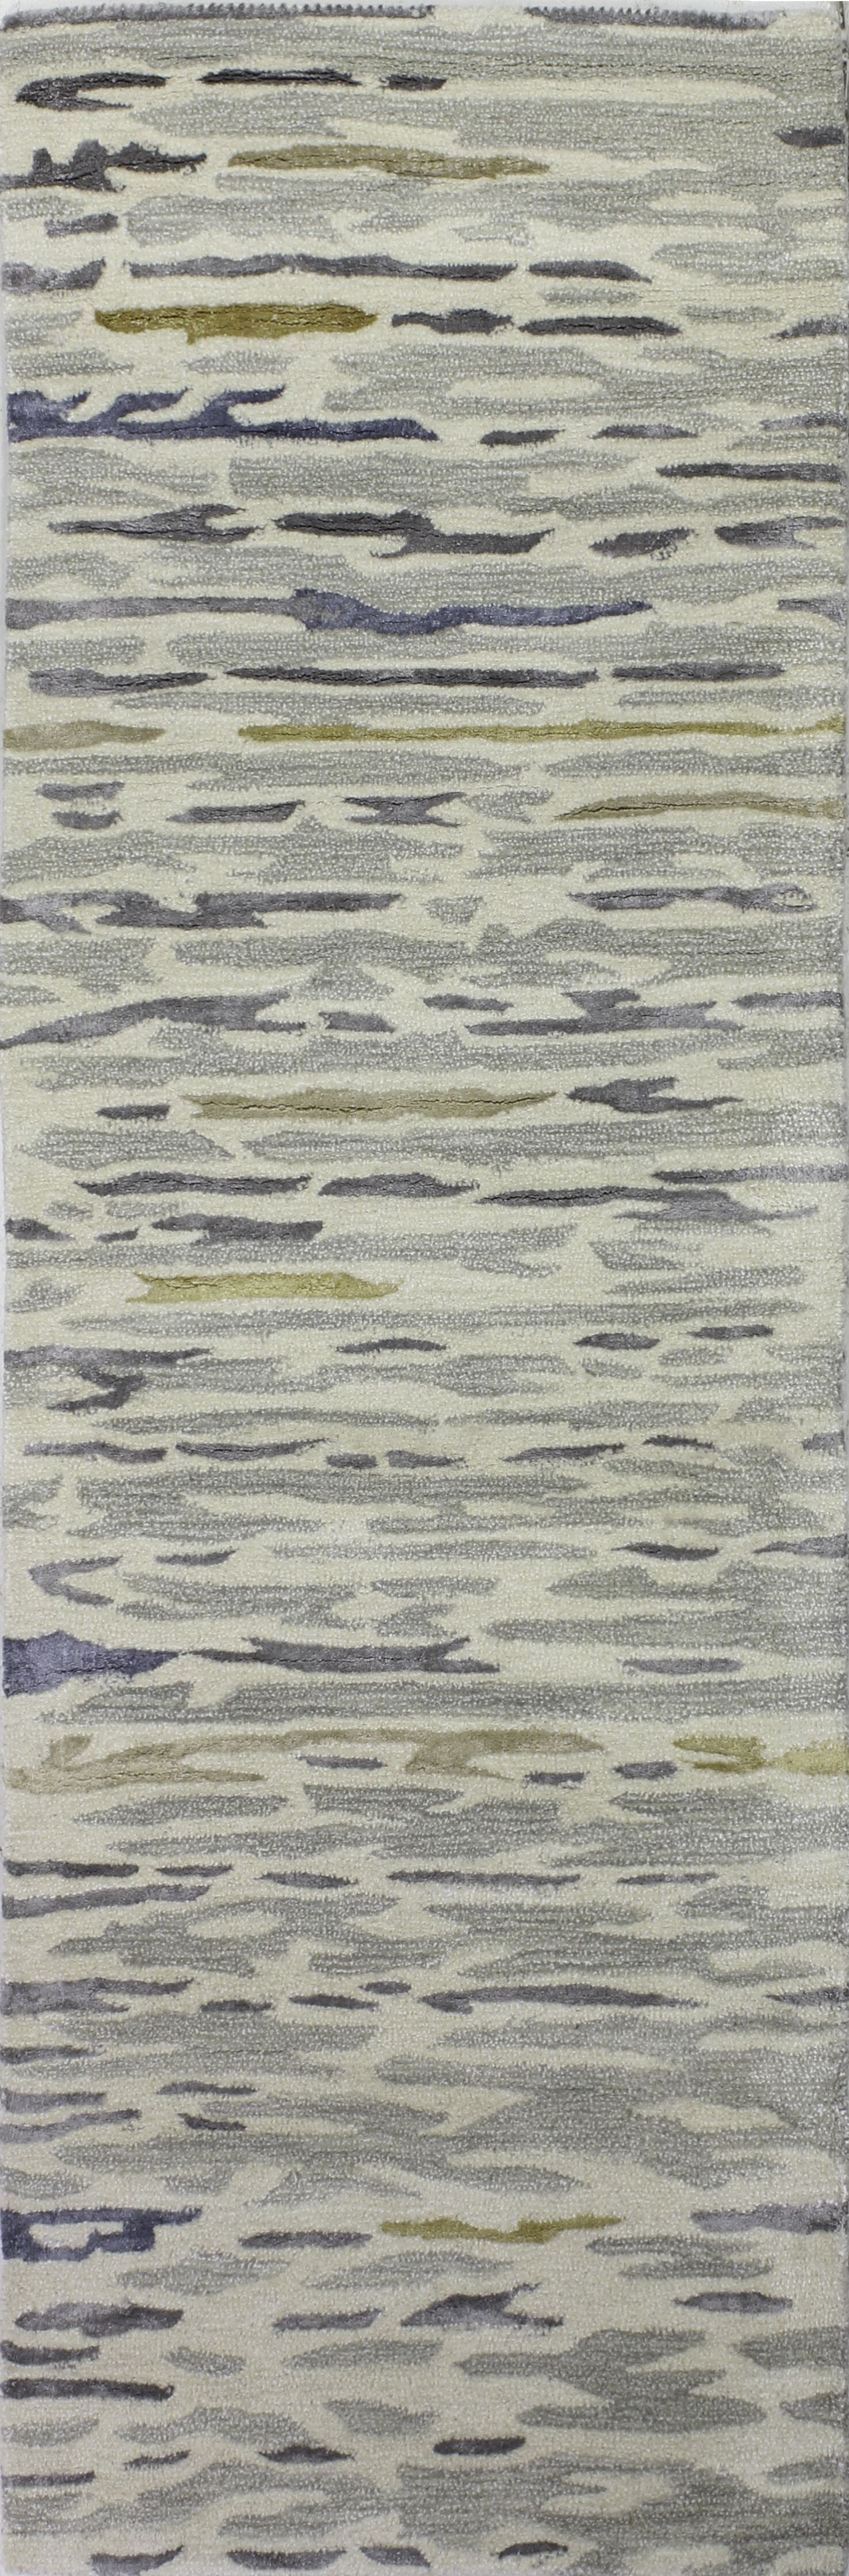 Galle Hand-Tufted Silver Area Rug Rug Size: Runner 2'6